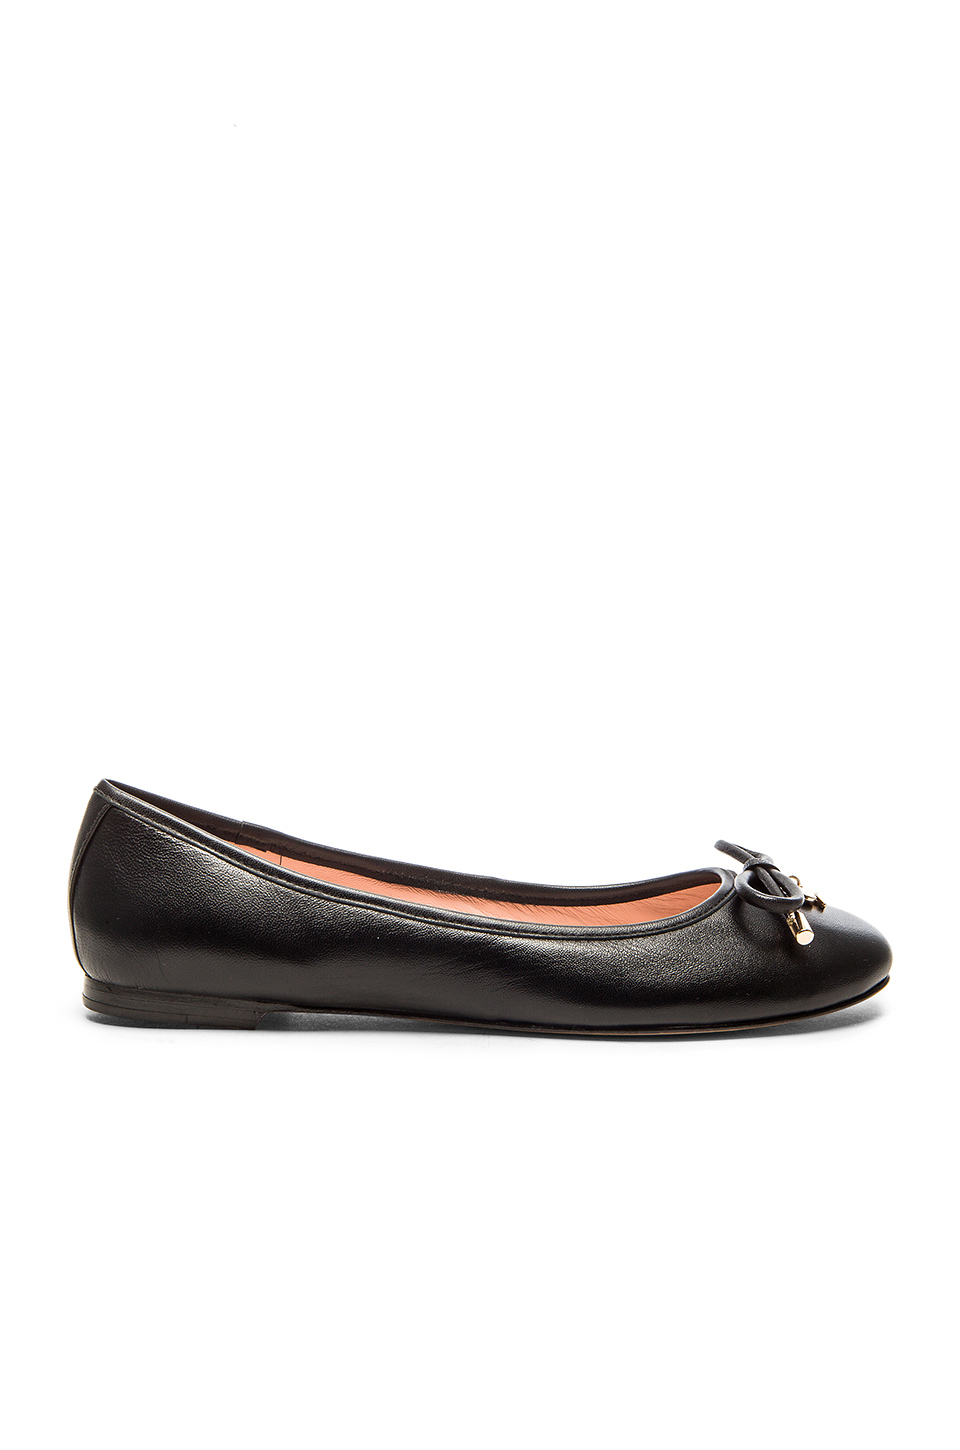 This dainty bowed beauty rounds up the top three on our list of the most comfortable ballet flats for travel, beautifully combining fashion and function, especially for business trips. Another popular style from from Cole Haan is the Elsie ballet flat.